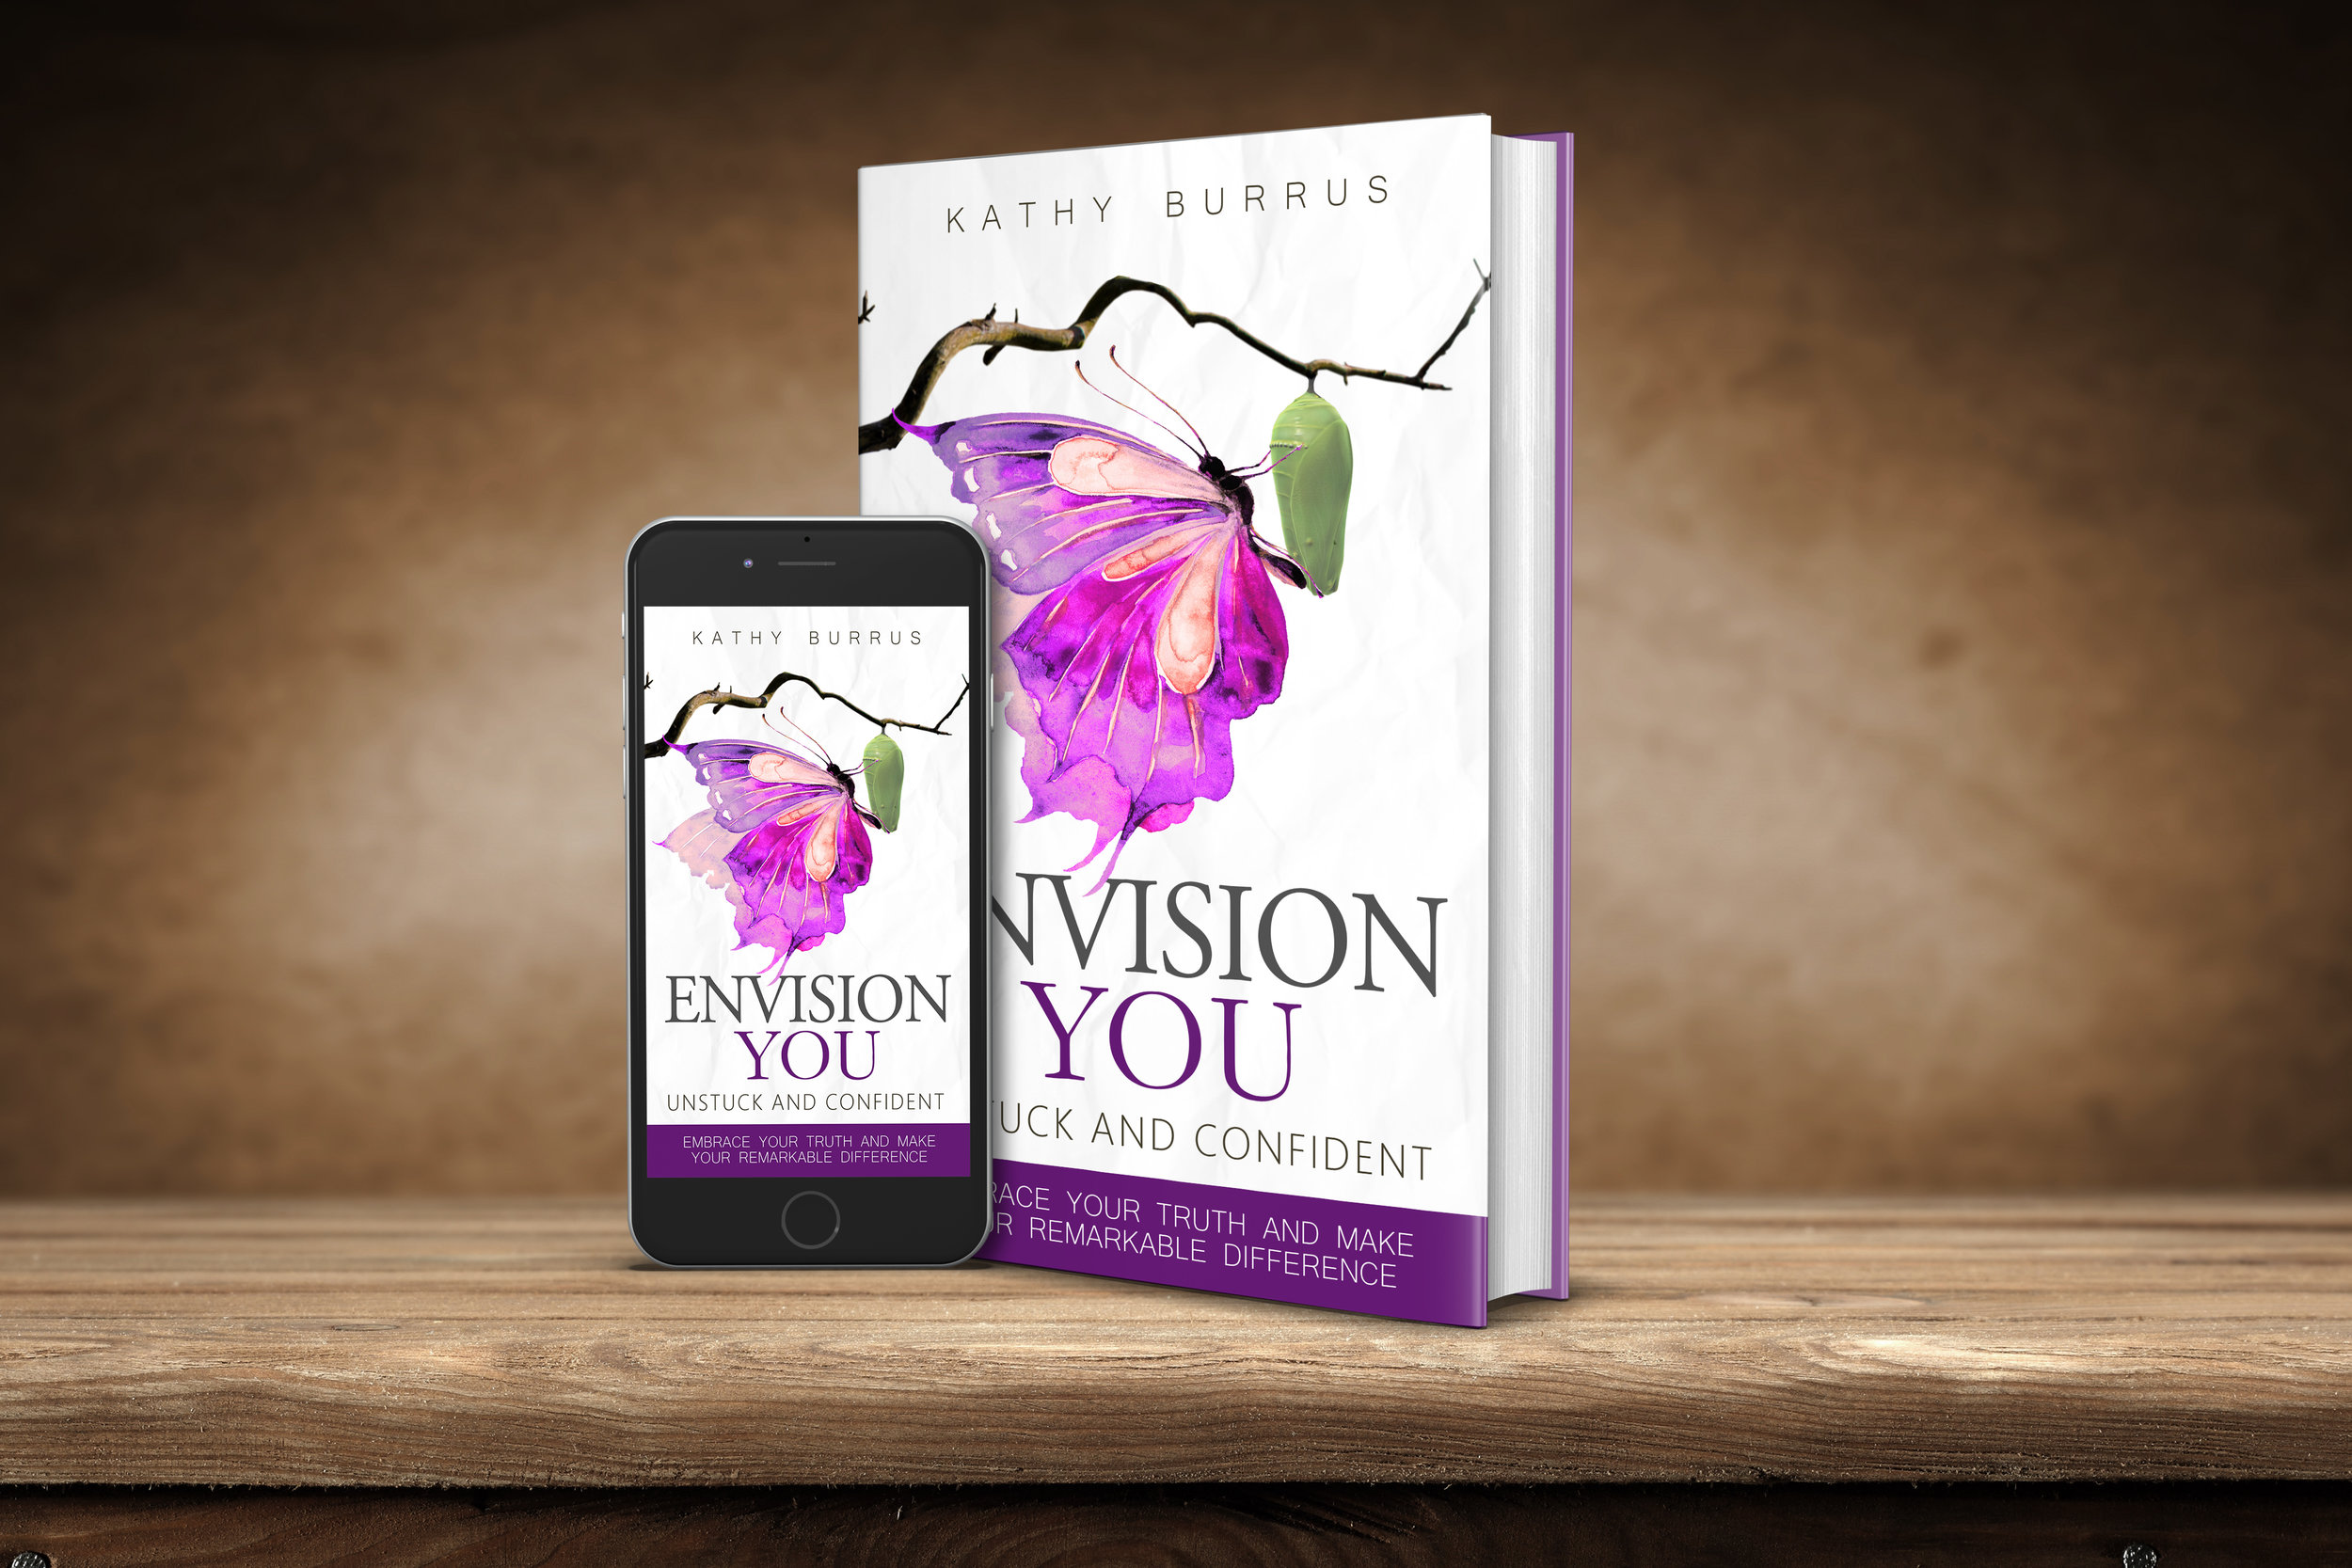 Request your free download of the companion workbook below! - Capture your thoughts and insights as you work through the material in EnVision YOU: UnStuck and Confident